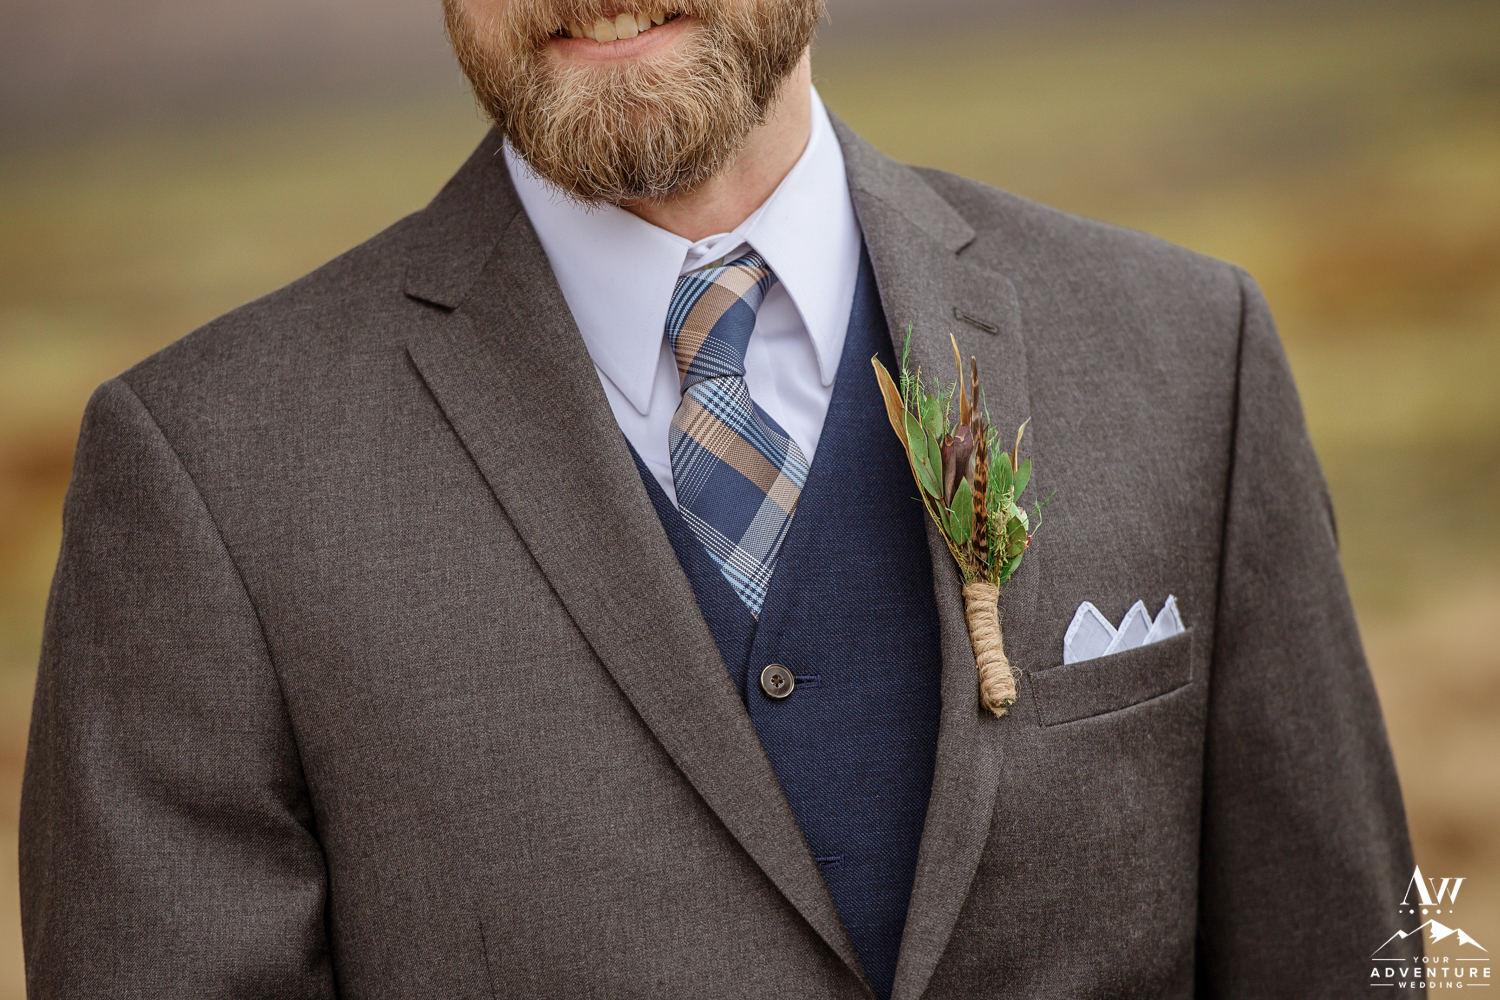 Iceland Grooms suit during Iceland elopement